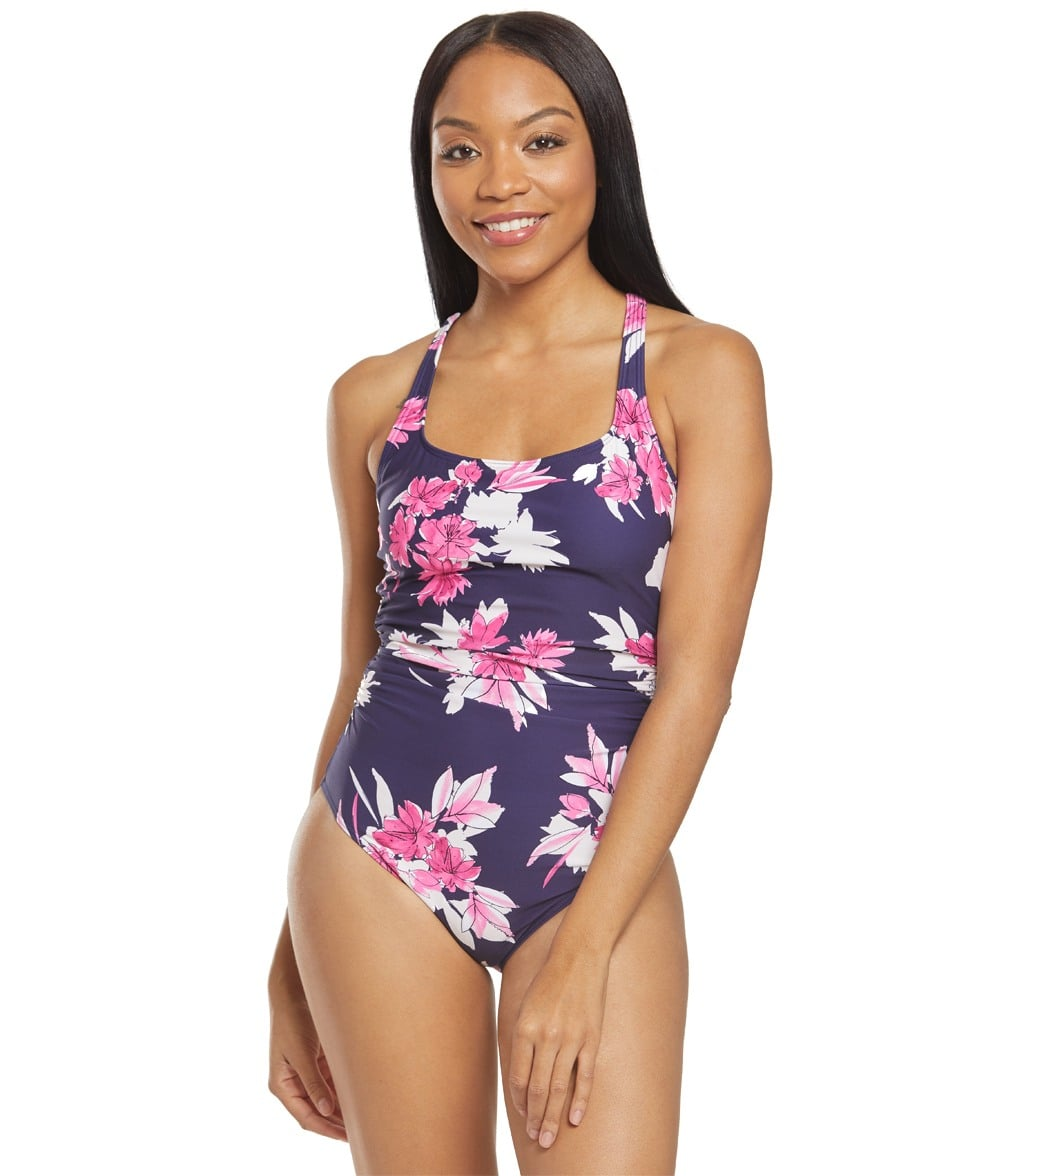 878e74214 Nautica Ahoy One Piece Swimsuit at SwimOutlet.com - Free Shipping